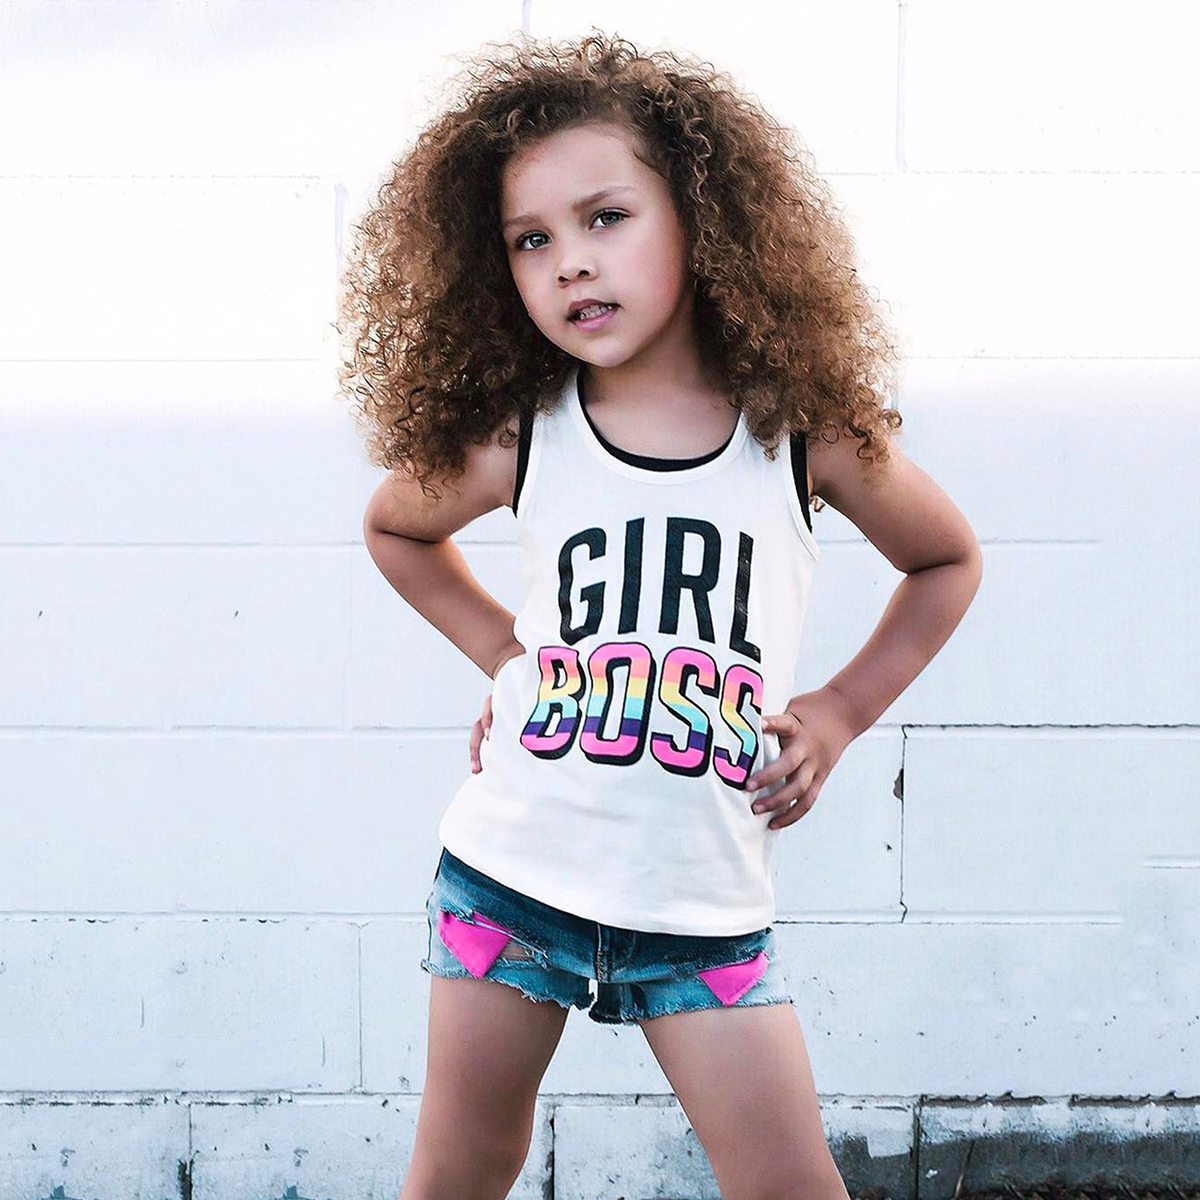 Girl Denim Shorts Set 2021 Summer Kid Cotton Letter Print Vest Suit 1-7Y Children's Clothing Casual Sleeveless Tops Pant Outfits